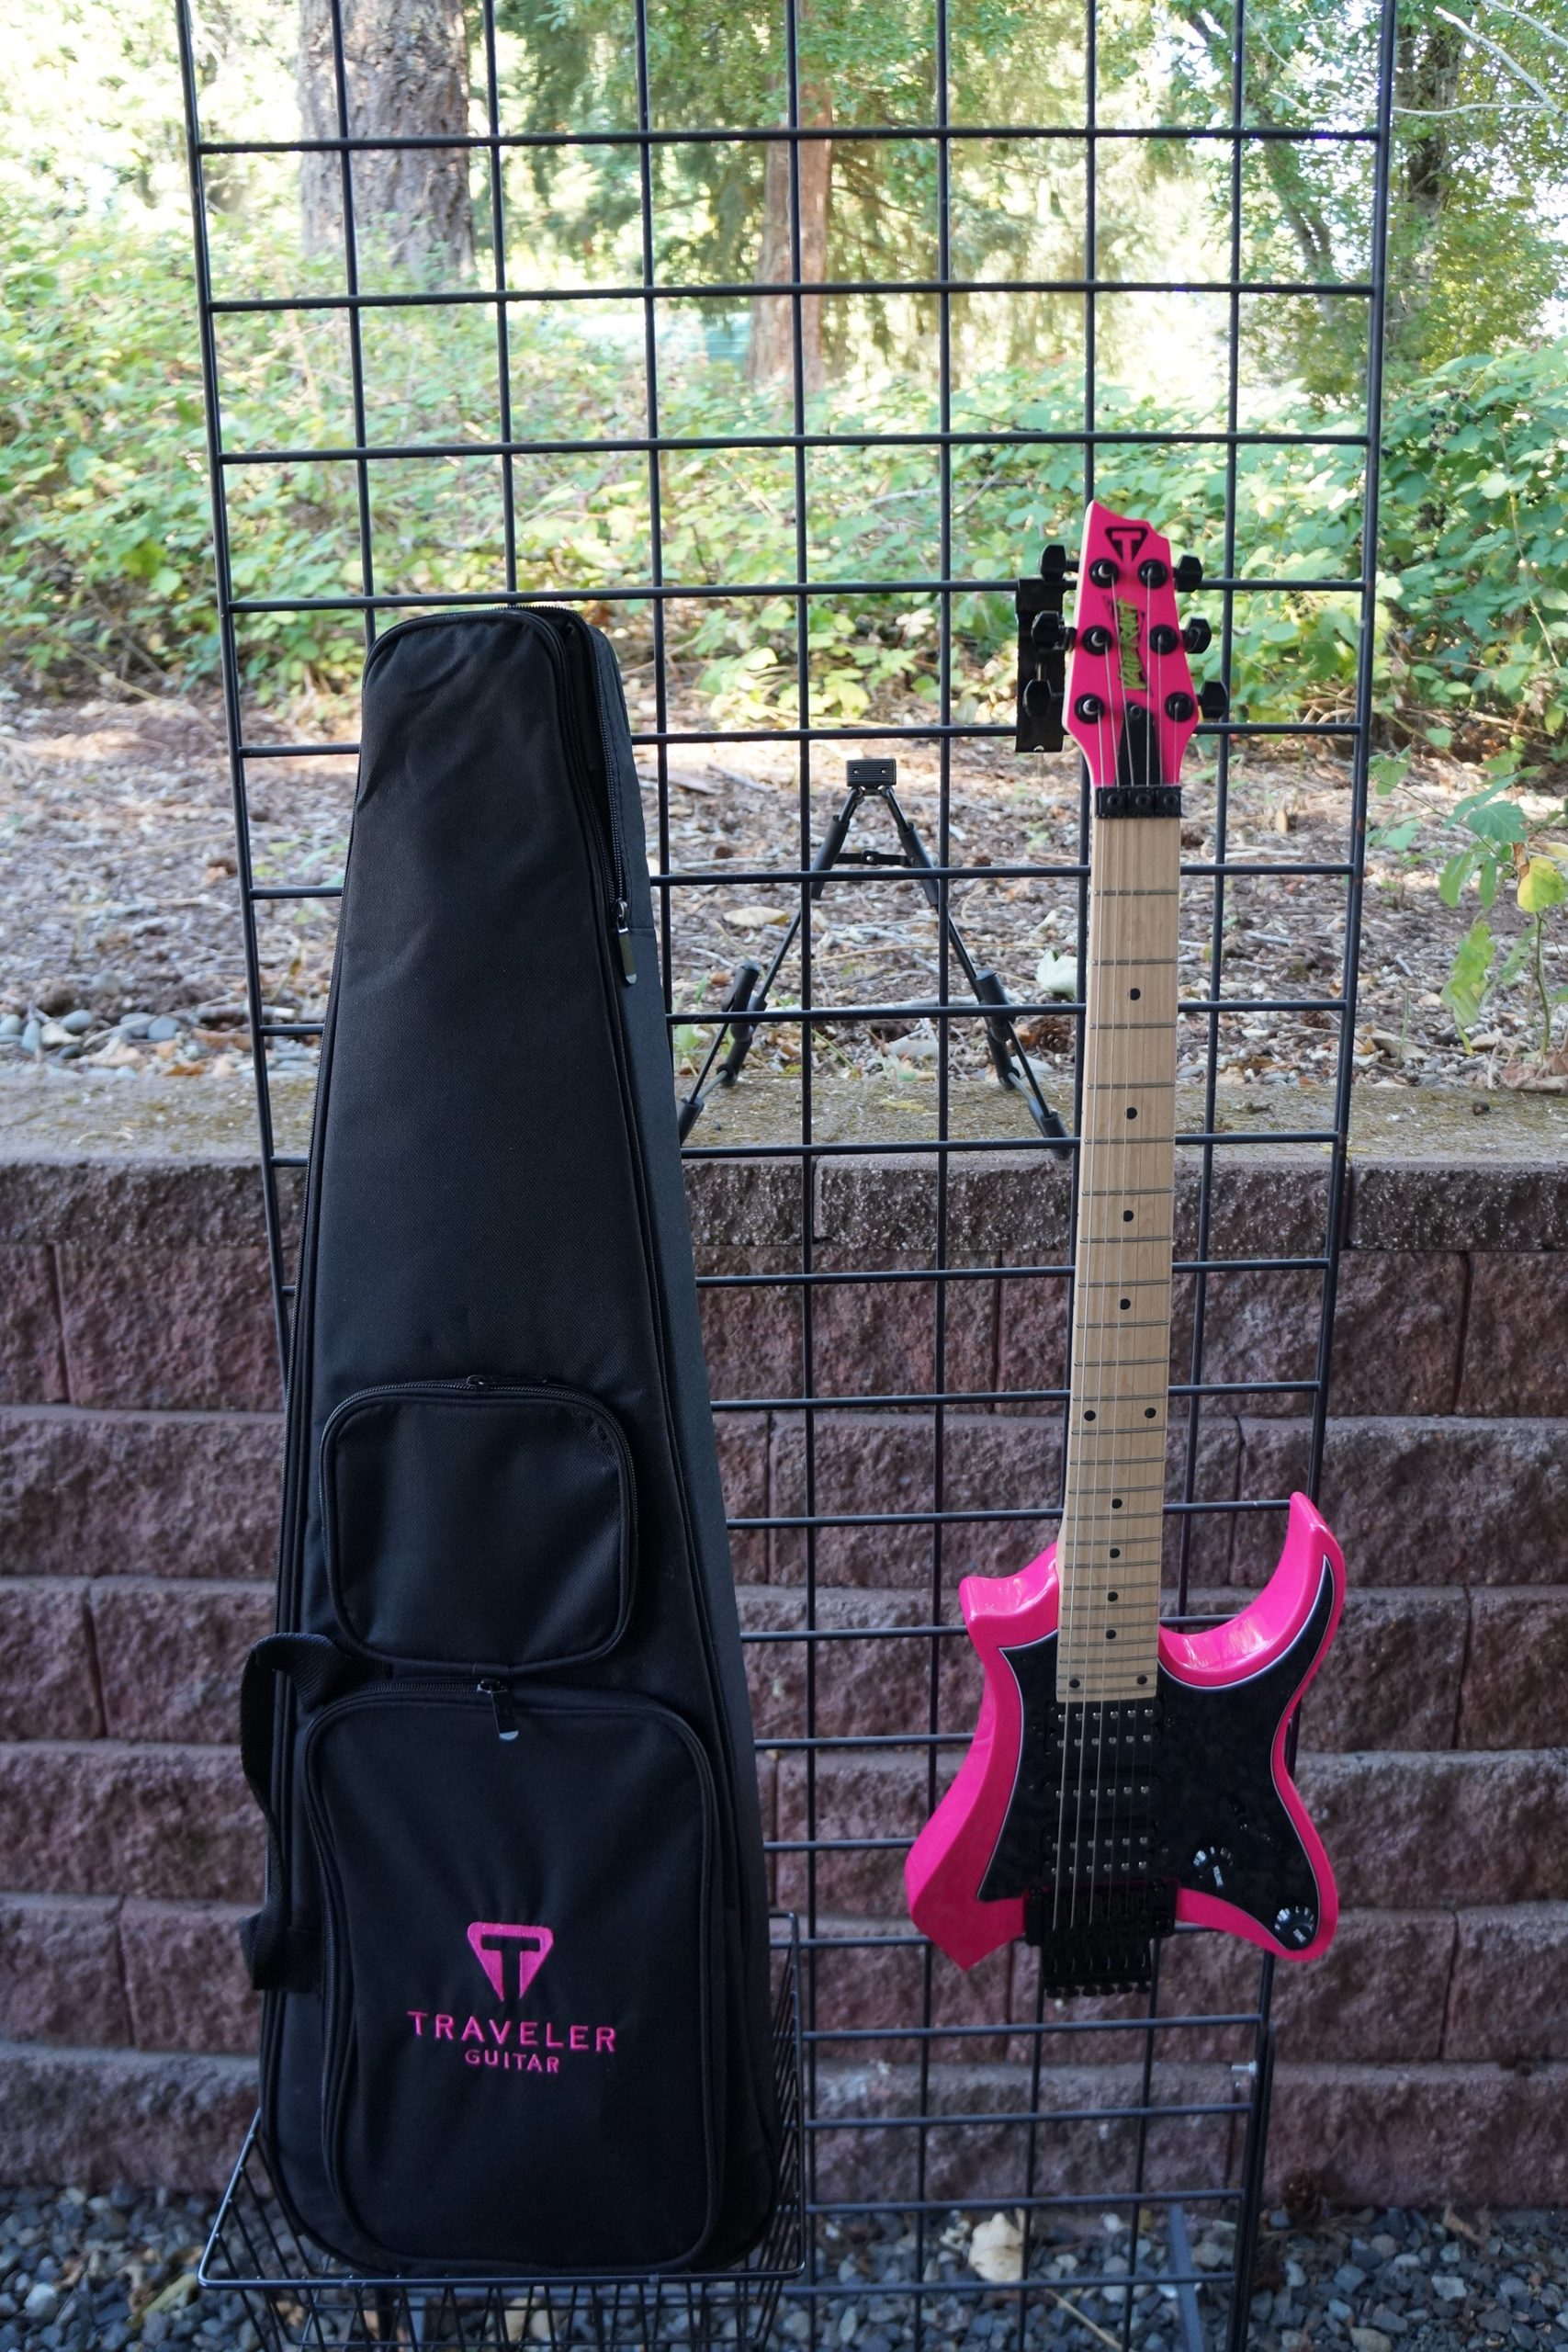 Traveler Vaibrant 88S HSH Electric Travel Guitar in Hot Pink with Travel Bag